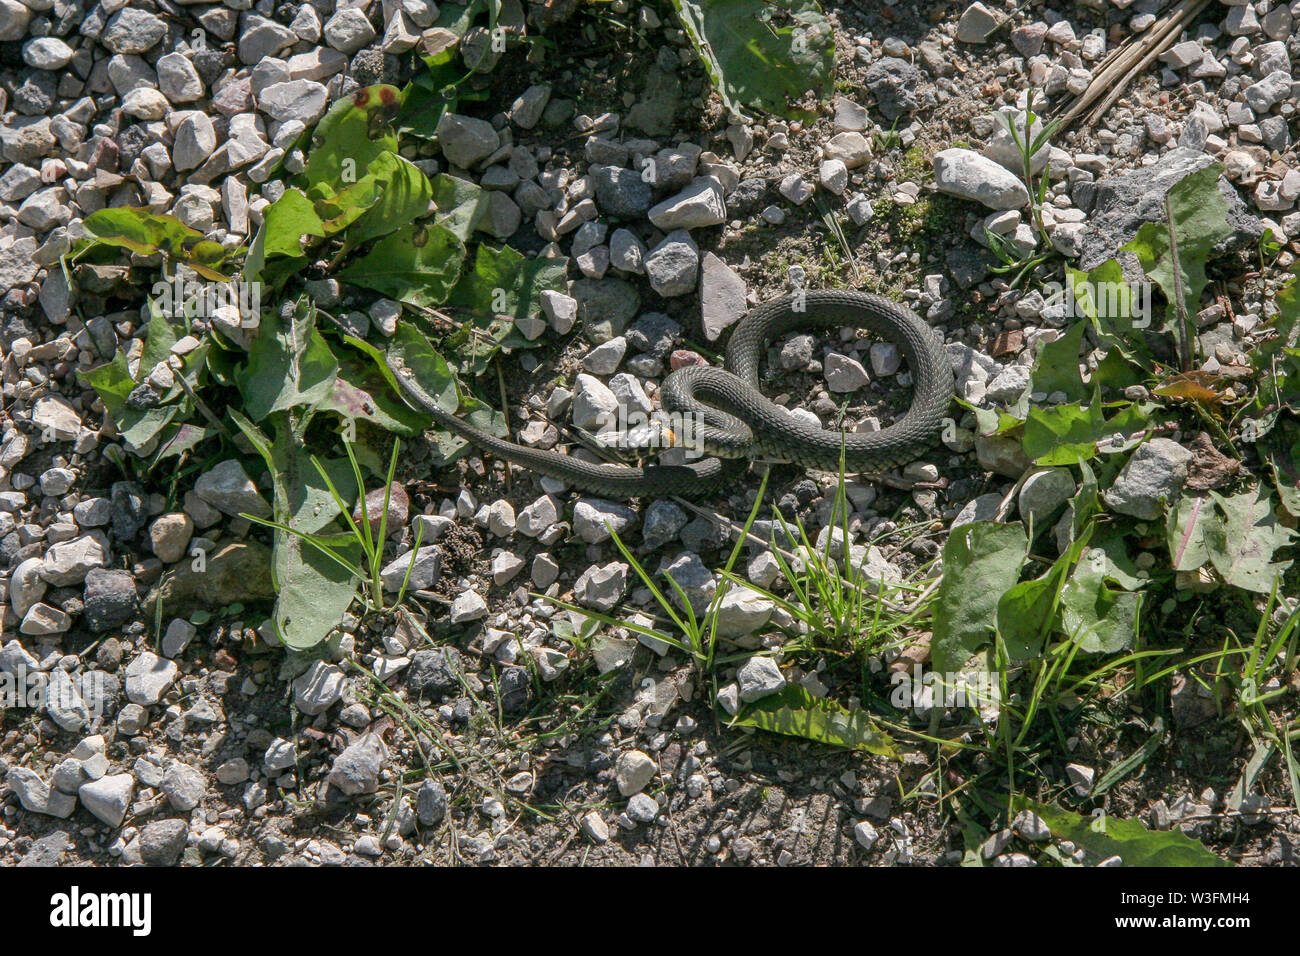 A non-poisonous snake like a spring prepared to jump from the rocks on the ground. Plantain grass is growing. Scattered rubble. - Stock Image